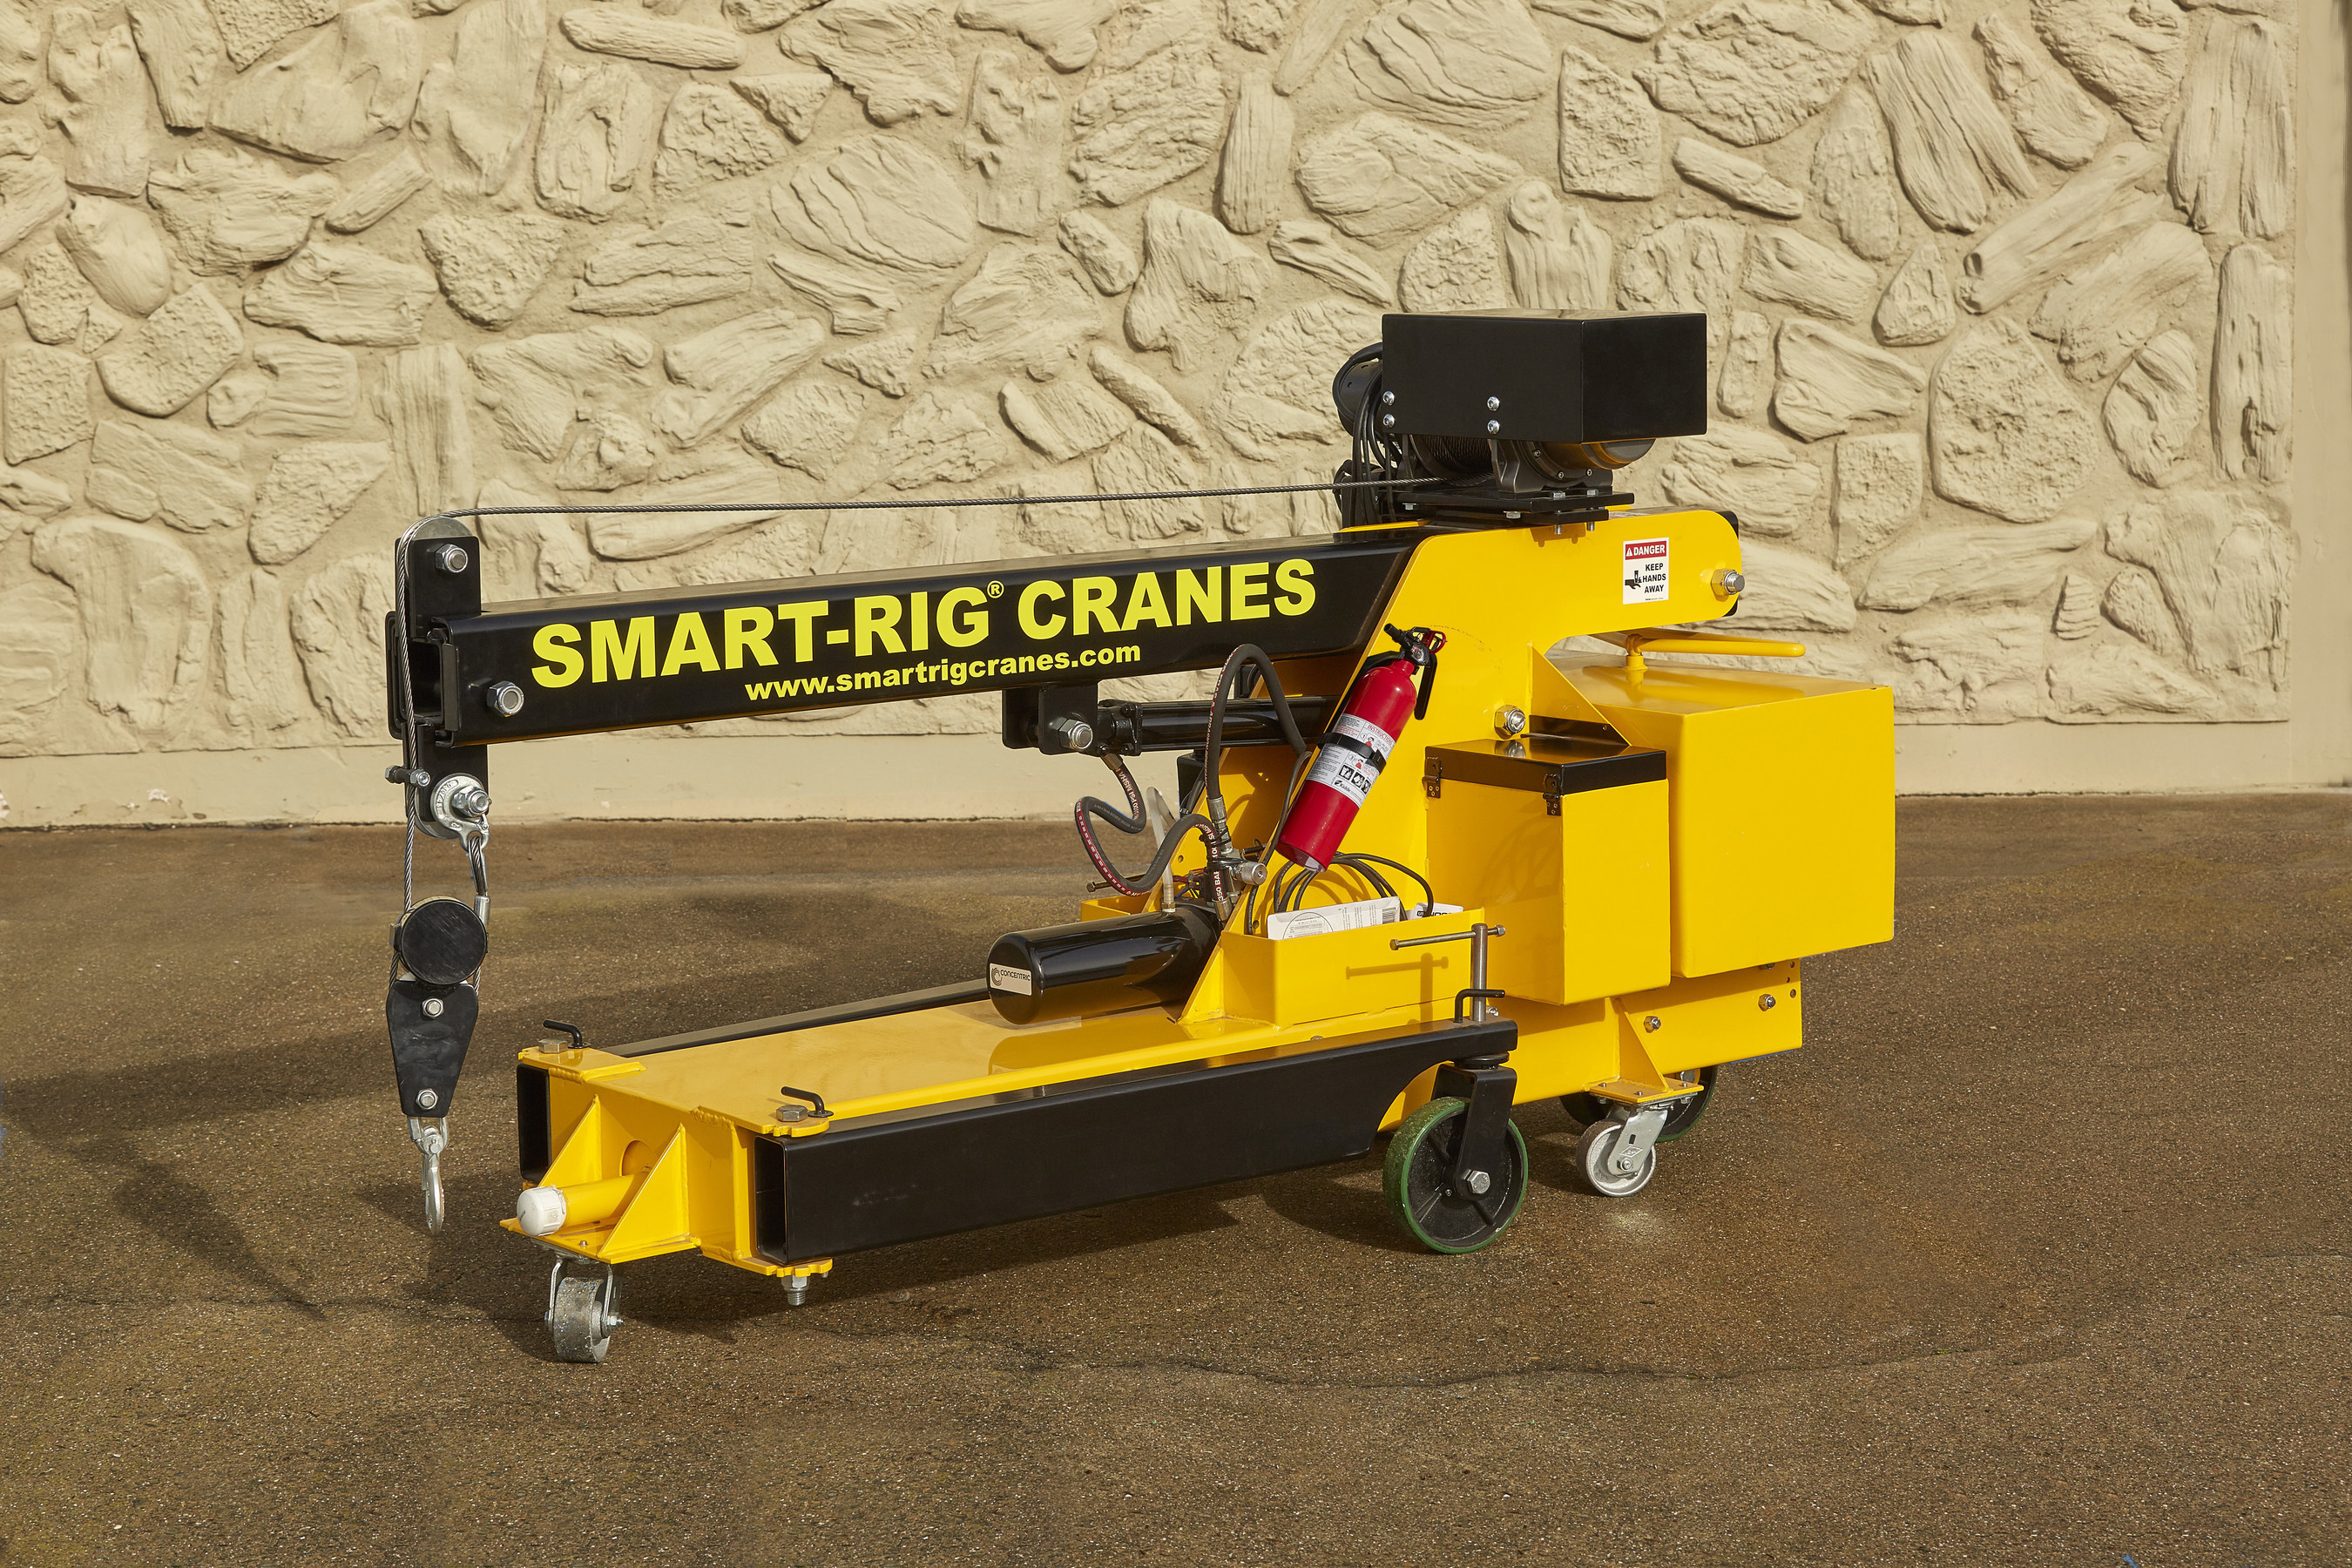 S1 Global Mini Crane Added To Smart Rig Product Line